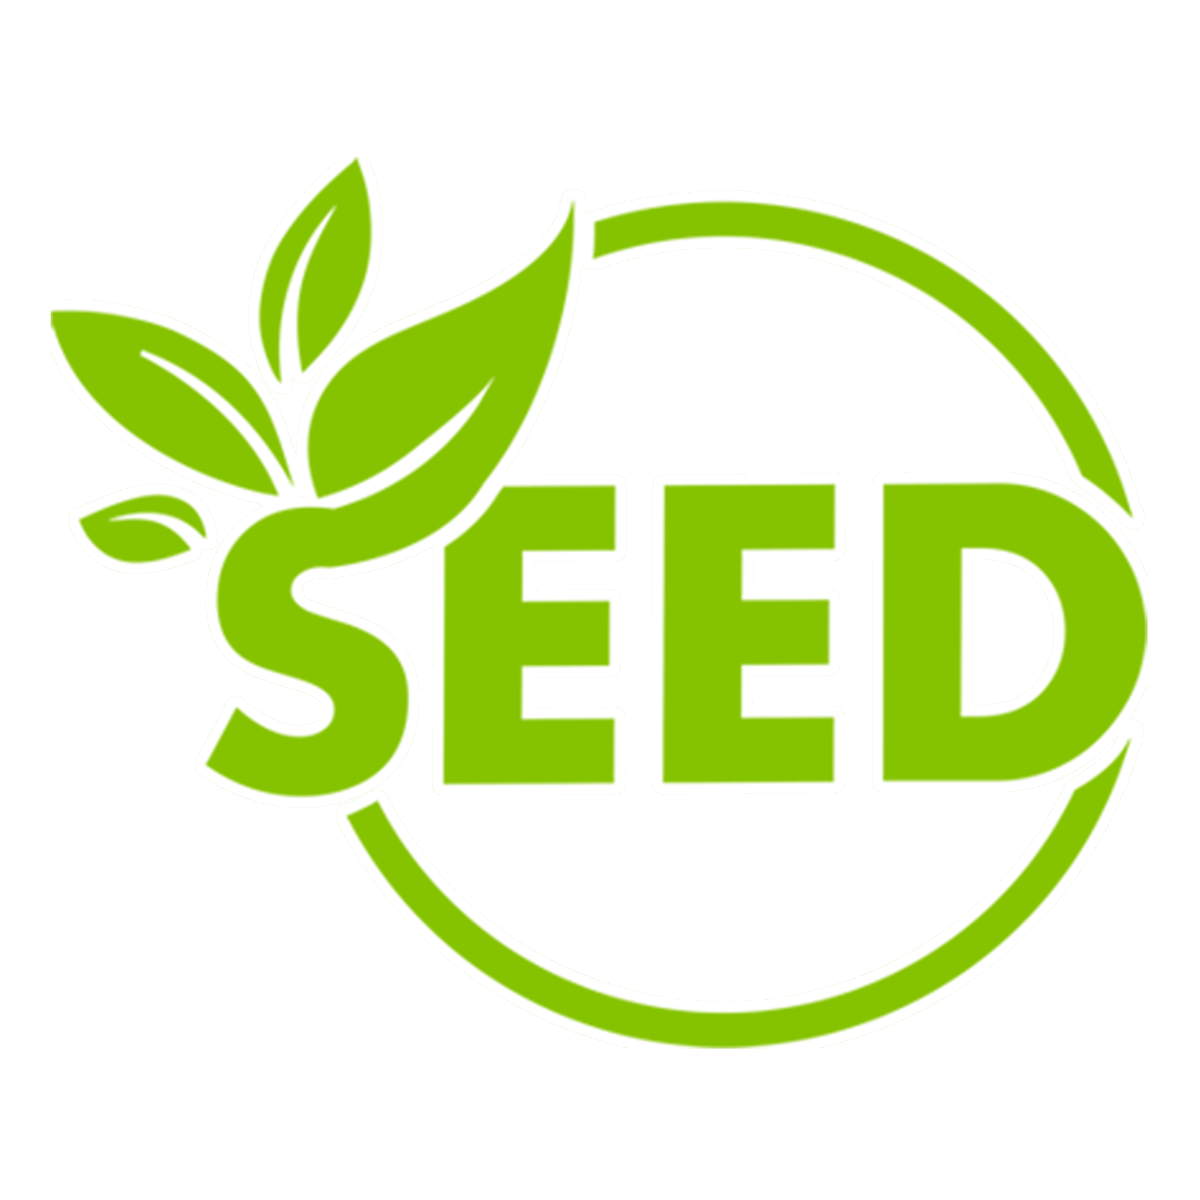 Seed Eatery